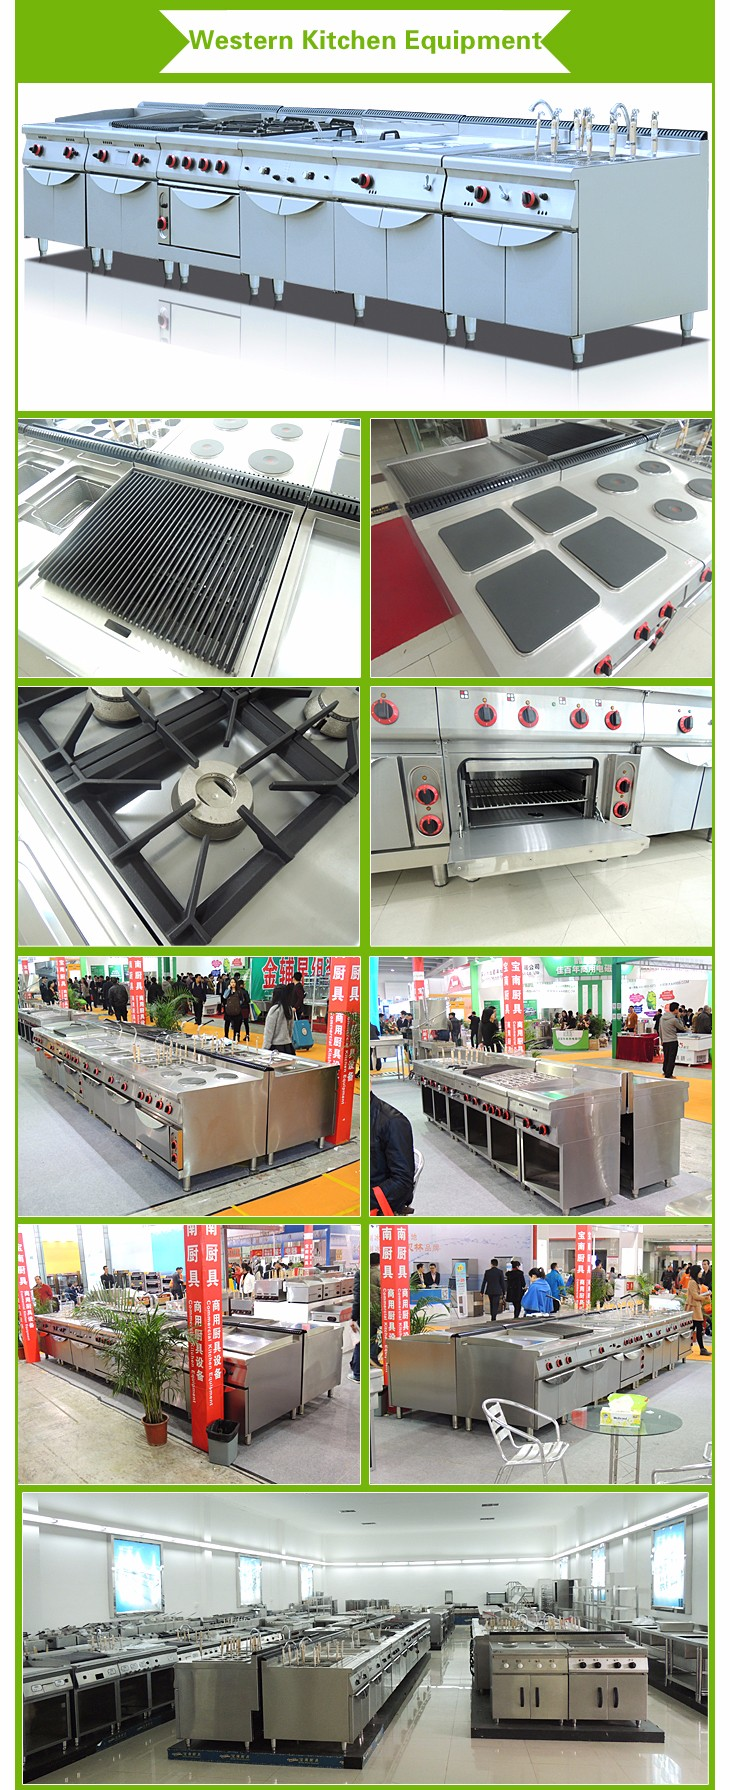 Stainless steel heavy duty kitchen equipment/gas bain-marie with cabinet BN900-G807